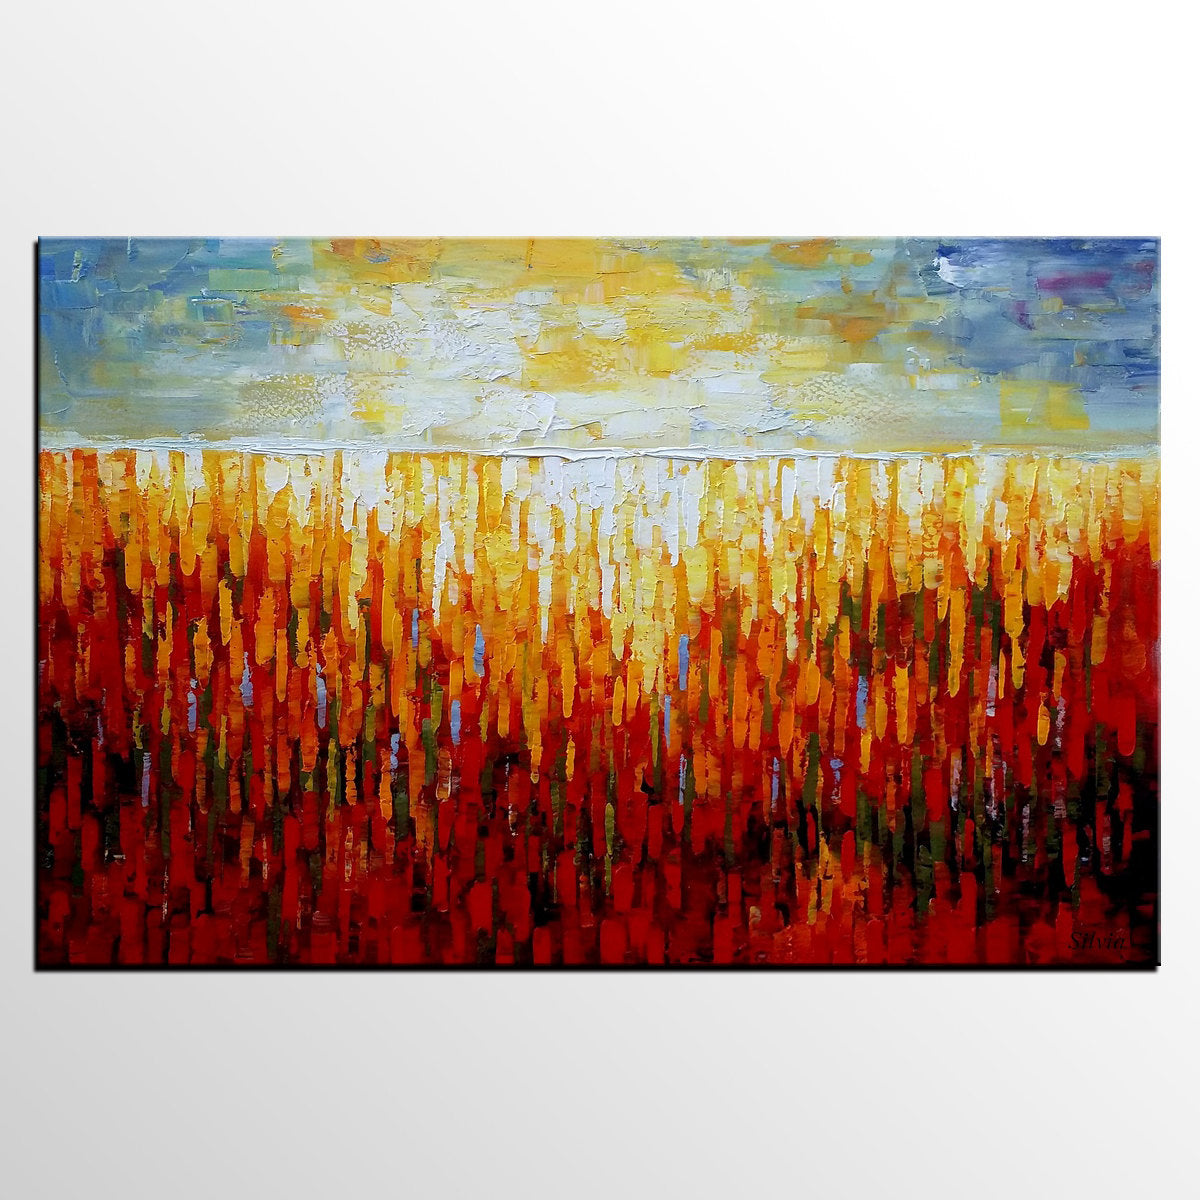 Large Wall Art, Heavy Texture Canvas Painting, Oil Painting, Original Abstract Art - Silvia Home Craft